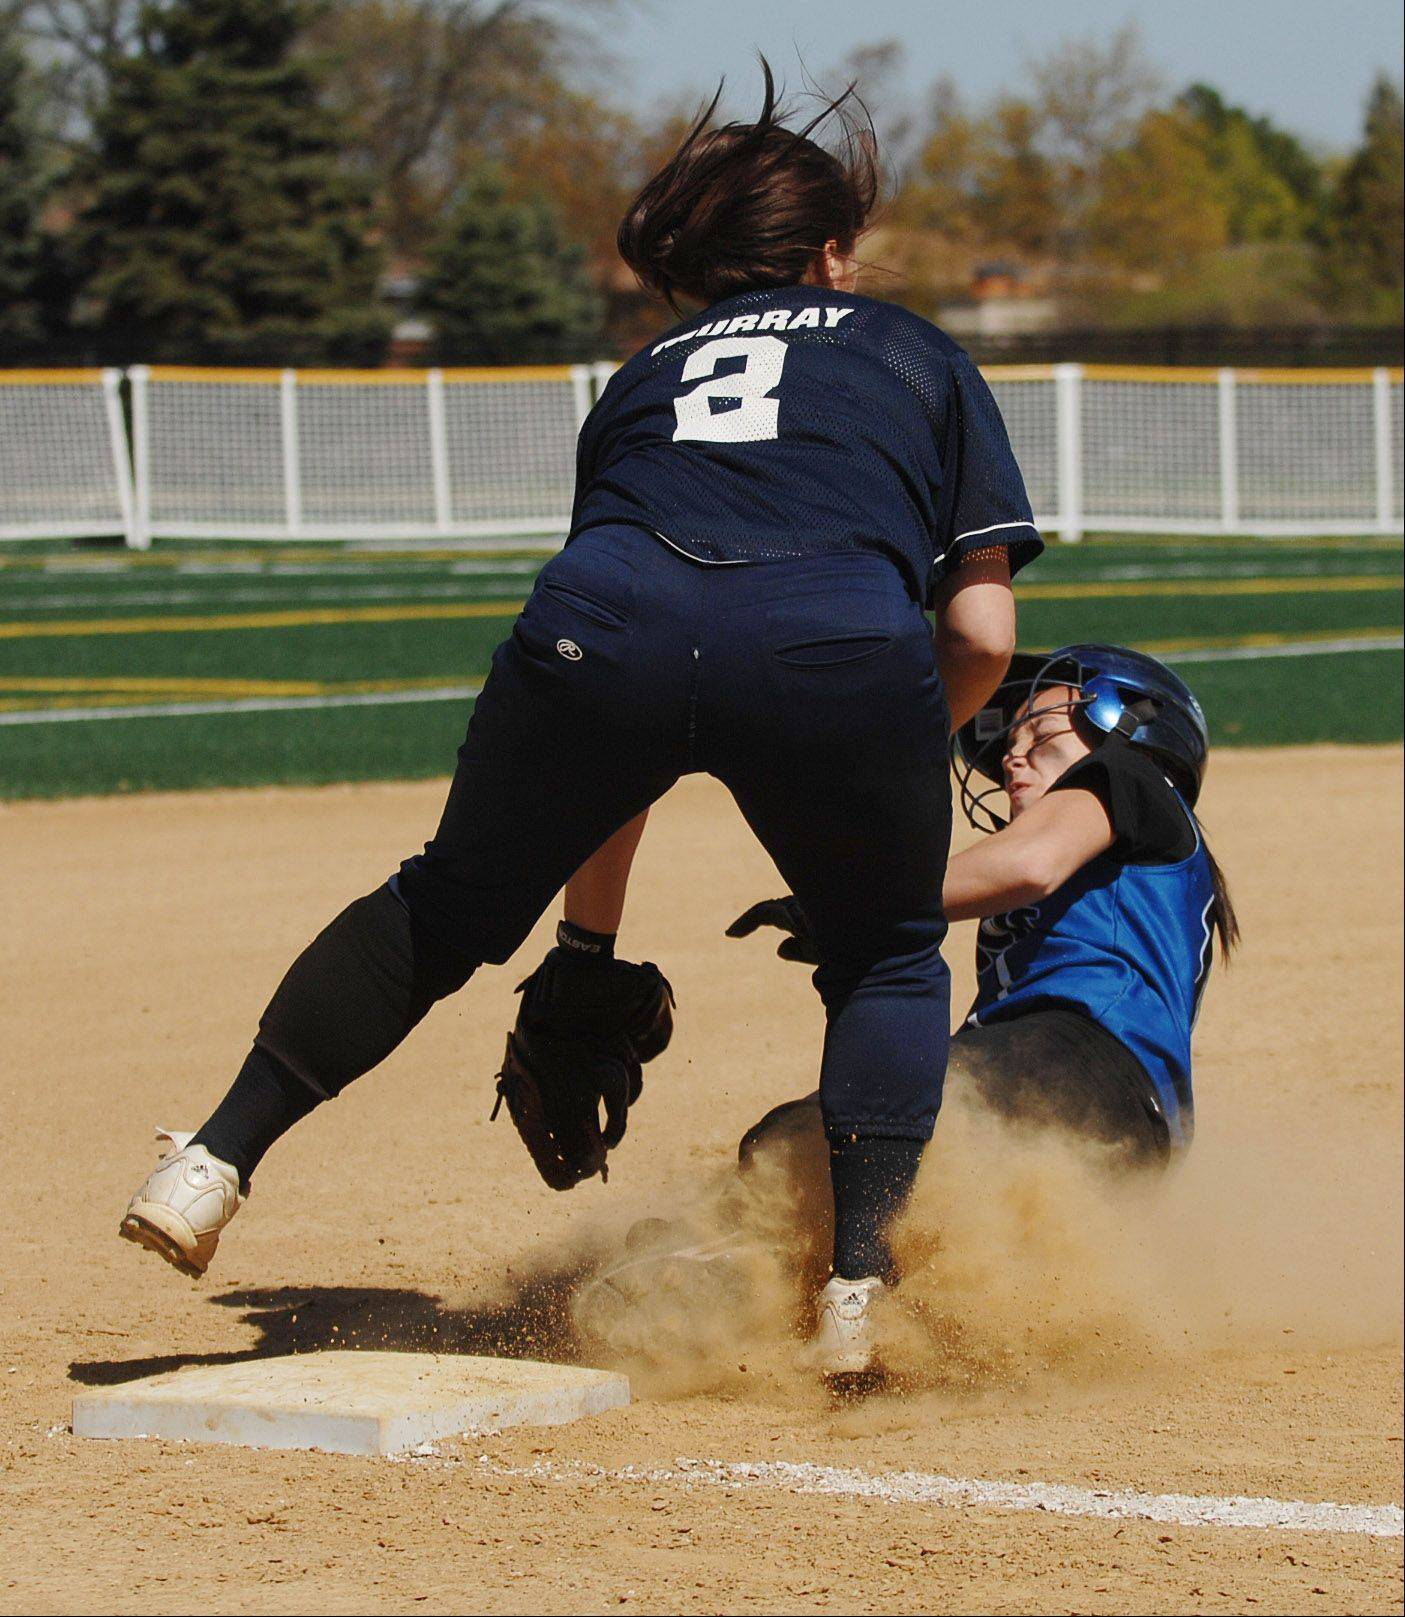 Bri Murray of Addison Trail,left, tags Lauren Rzeszutko of St. Francis during the St. Francis at Addison Trail softball game Wednesday.